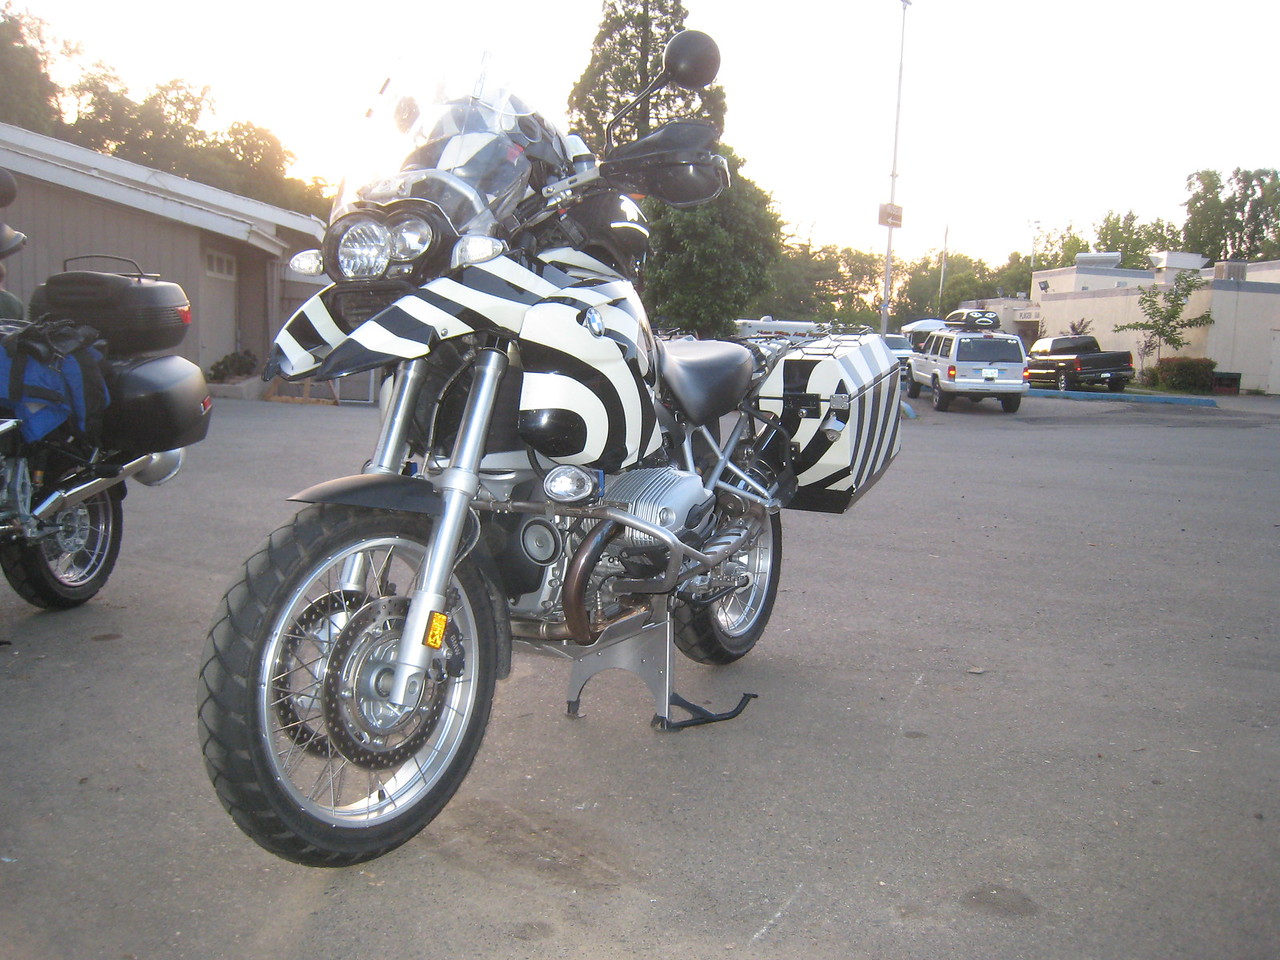 Continuing to roam the fairgrounds, I find this GS with a Zebra paint scheme.